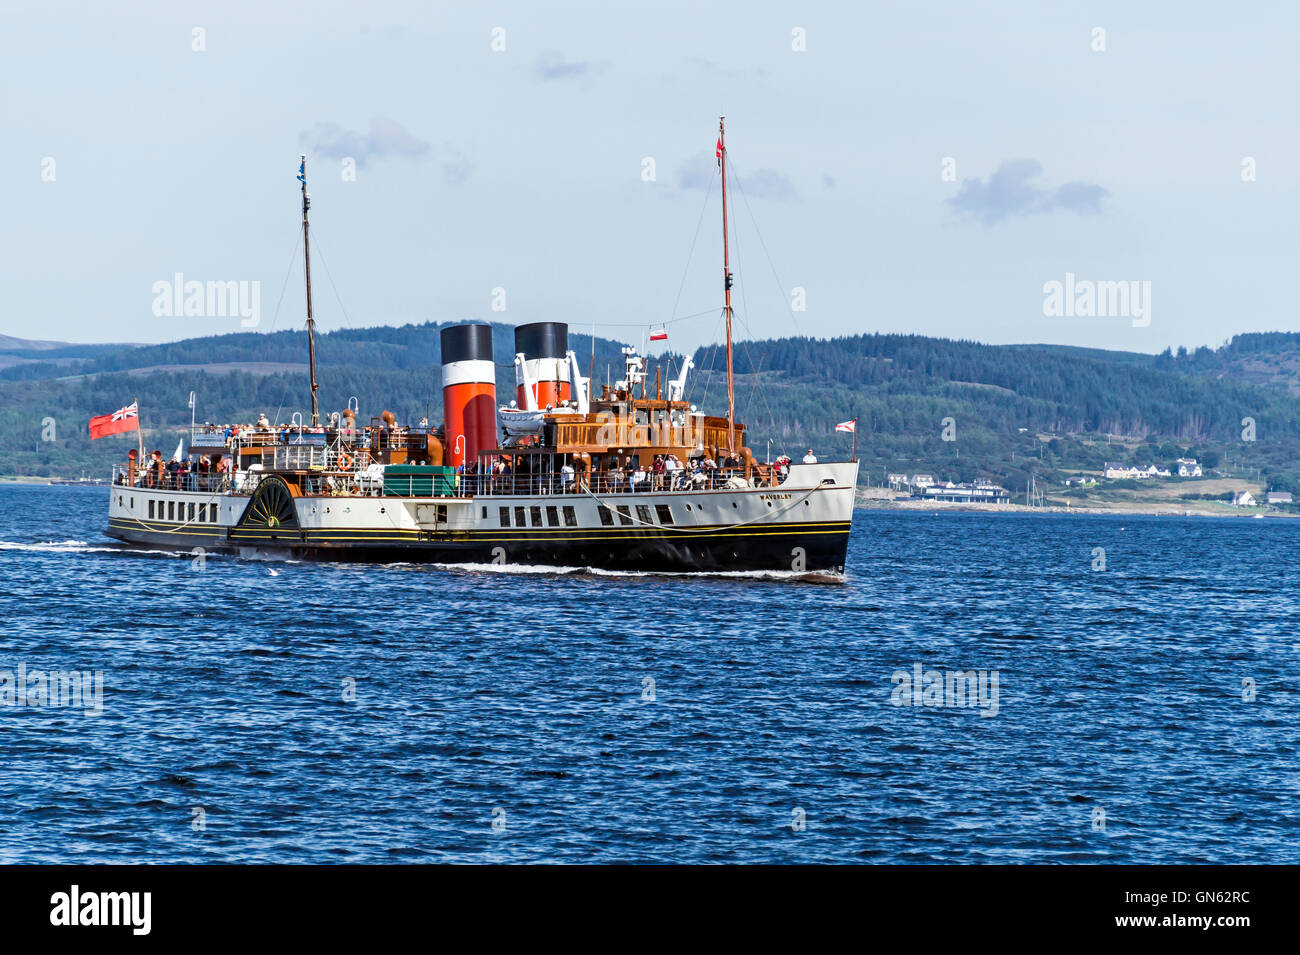 Paddle Steamer Waverley arriving at Tarbert pier Argyll and Bute Scotland after a cruise in Loch Fyne - Stock Image